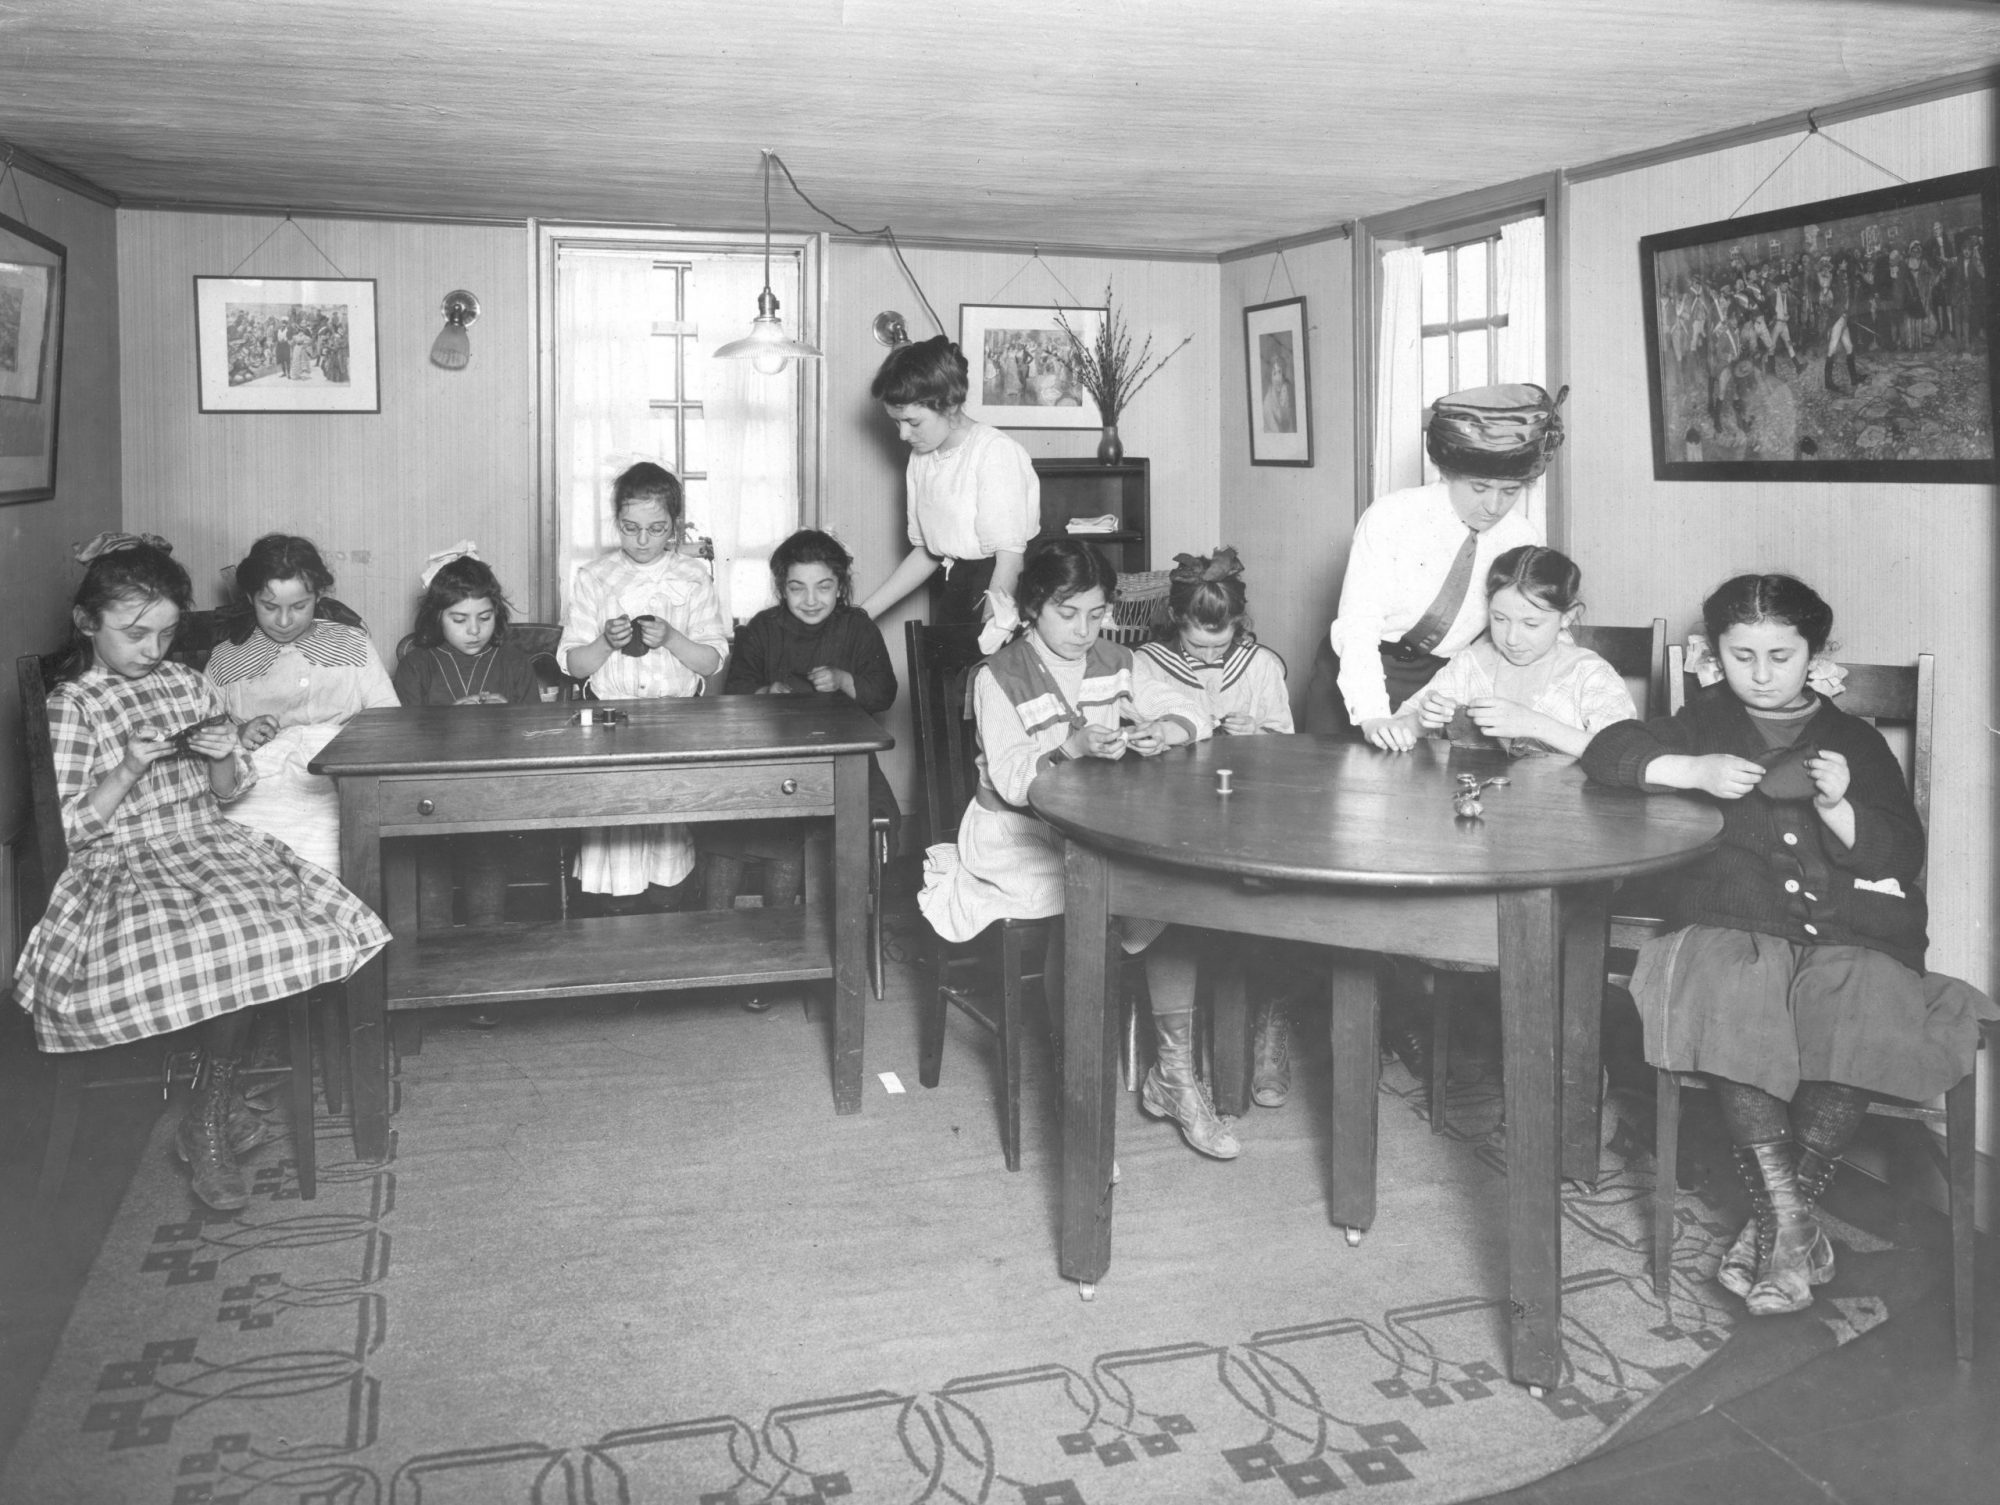 Old Photo of Children Learning How to Sew | House of 7 Gables Mission | Settlement Program